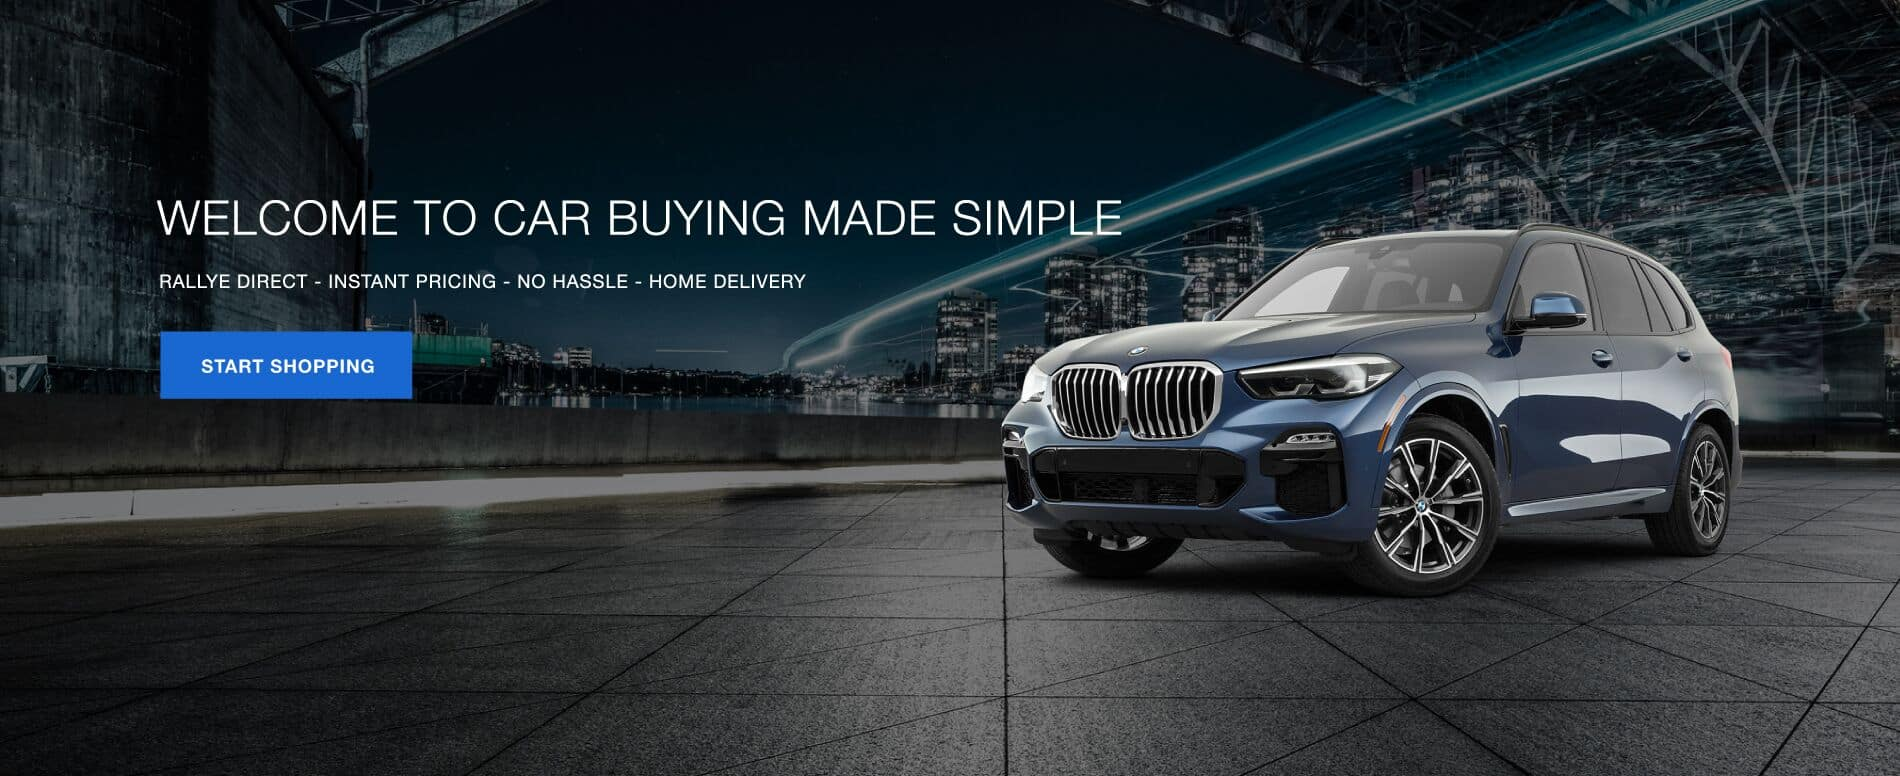 BMW Bayside Service >> Rallye Bmw New Pre Owned Bmw Dealer In Long Island Ny